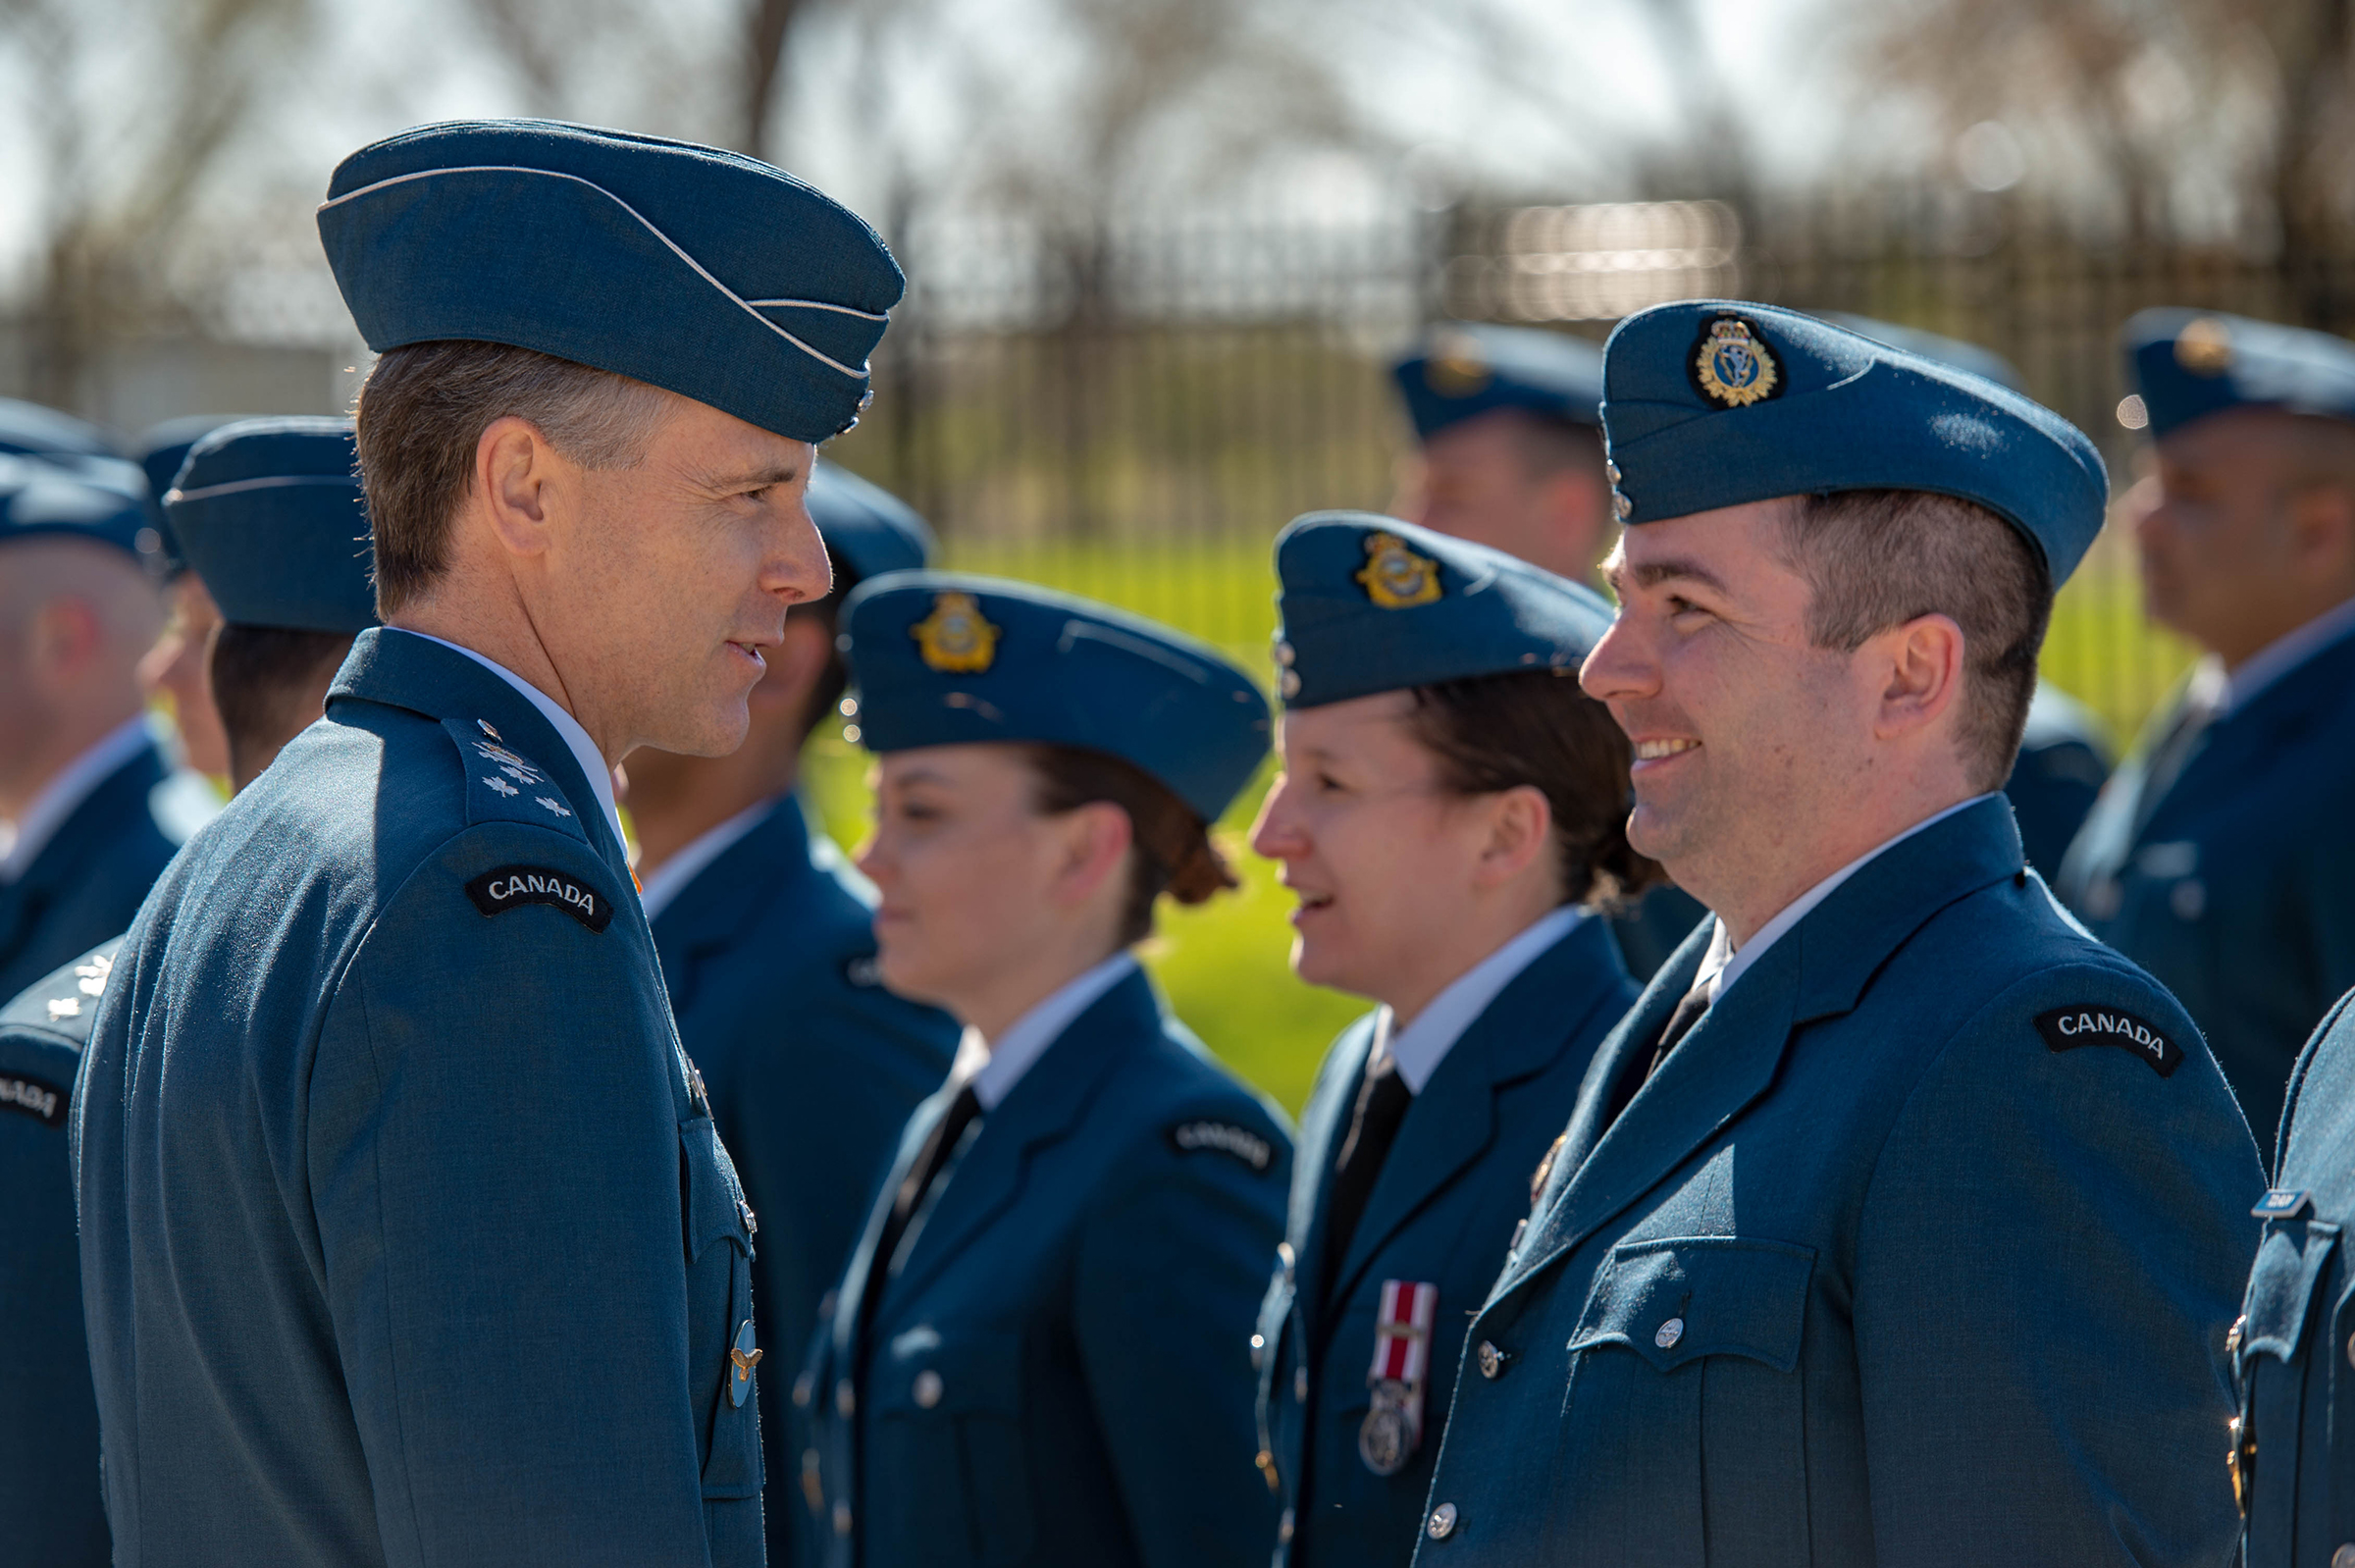 Lieutenant-General Al Meinzinger, commander of the Royal Canadian Air Force, speaks with a member of the RCAF as he reviews the parade during the change of command ceremony for 1 Canadian Air Division, Canadian NORAD Region and the Joint Force Air Component held May 16, 2019, at 1 CAD headquarters in Winnipeg, Manitoba. PHOTO: Corporal Bryce Cooper, WG2019-0214-021